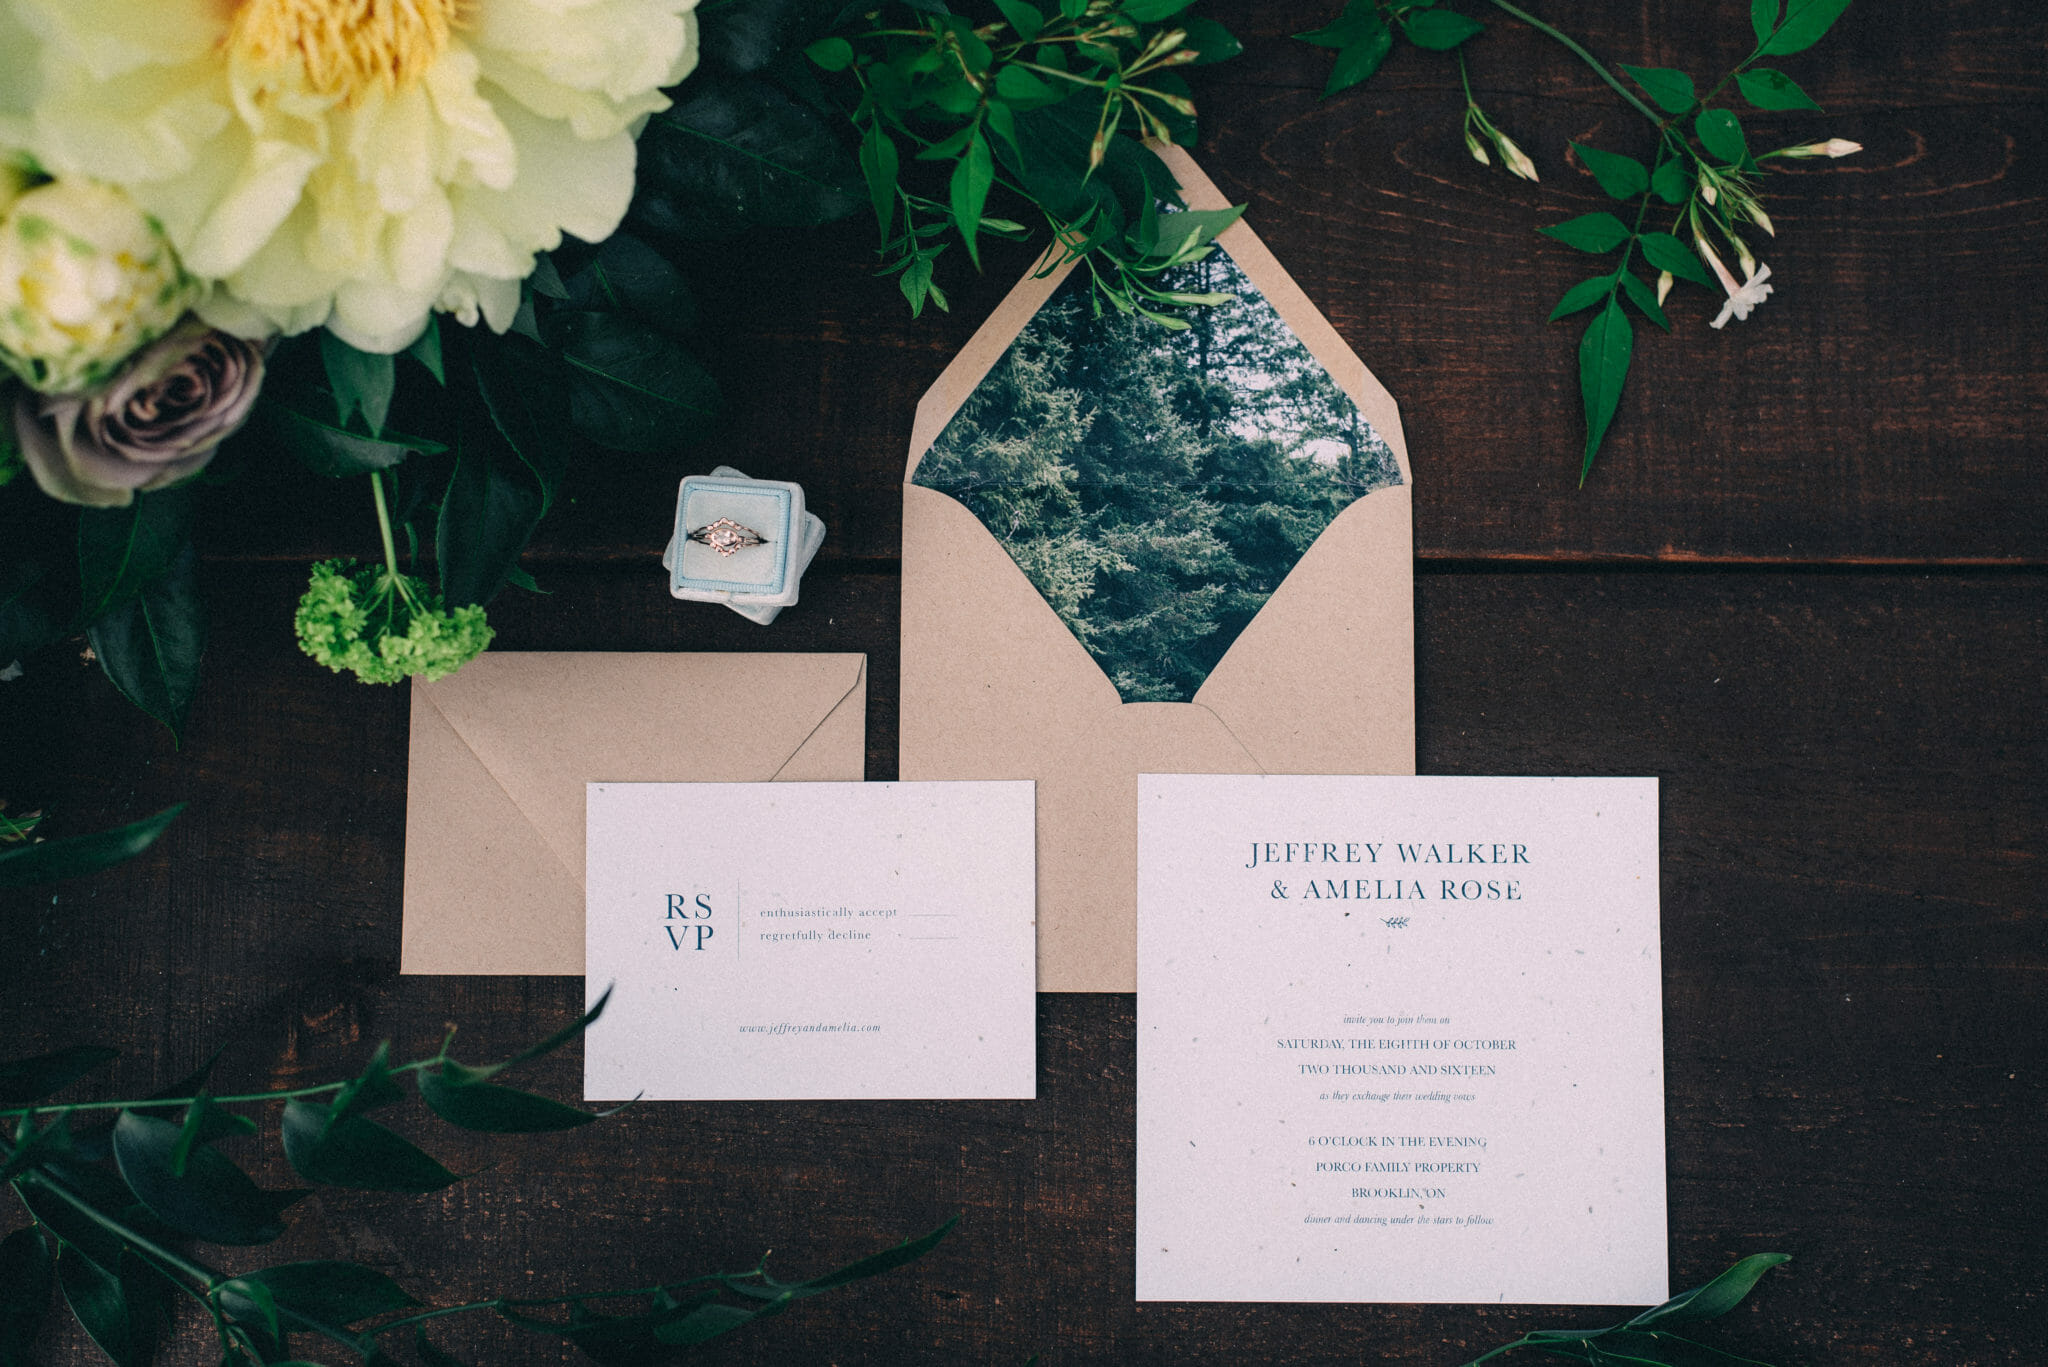 Invitation Suite of nature inspired stationary